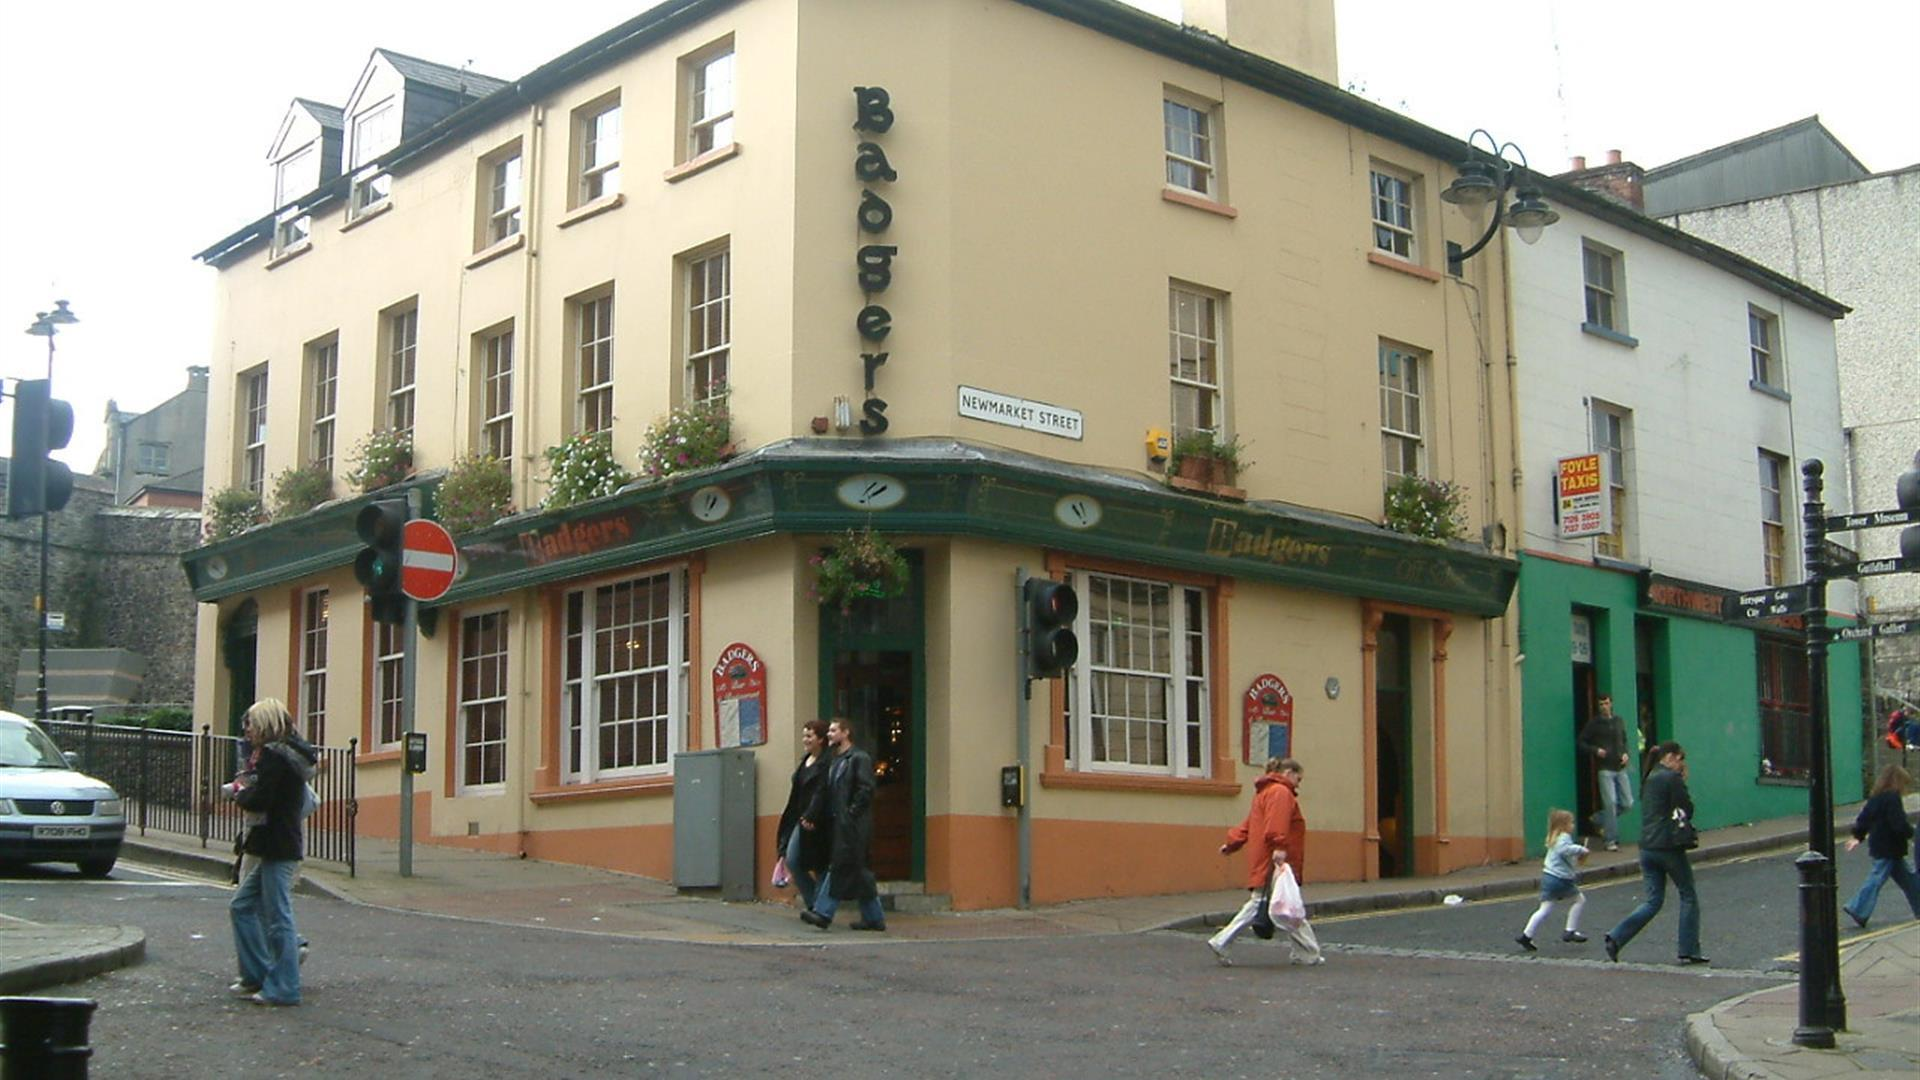 Badgers Bar And Restaurant